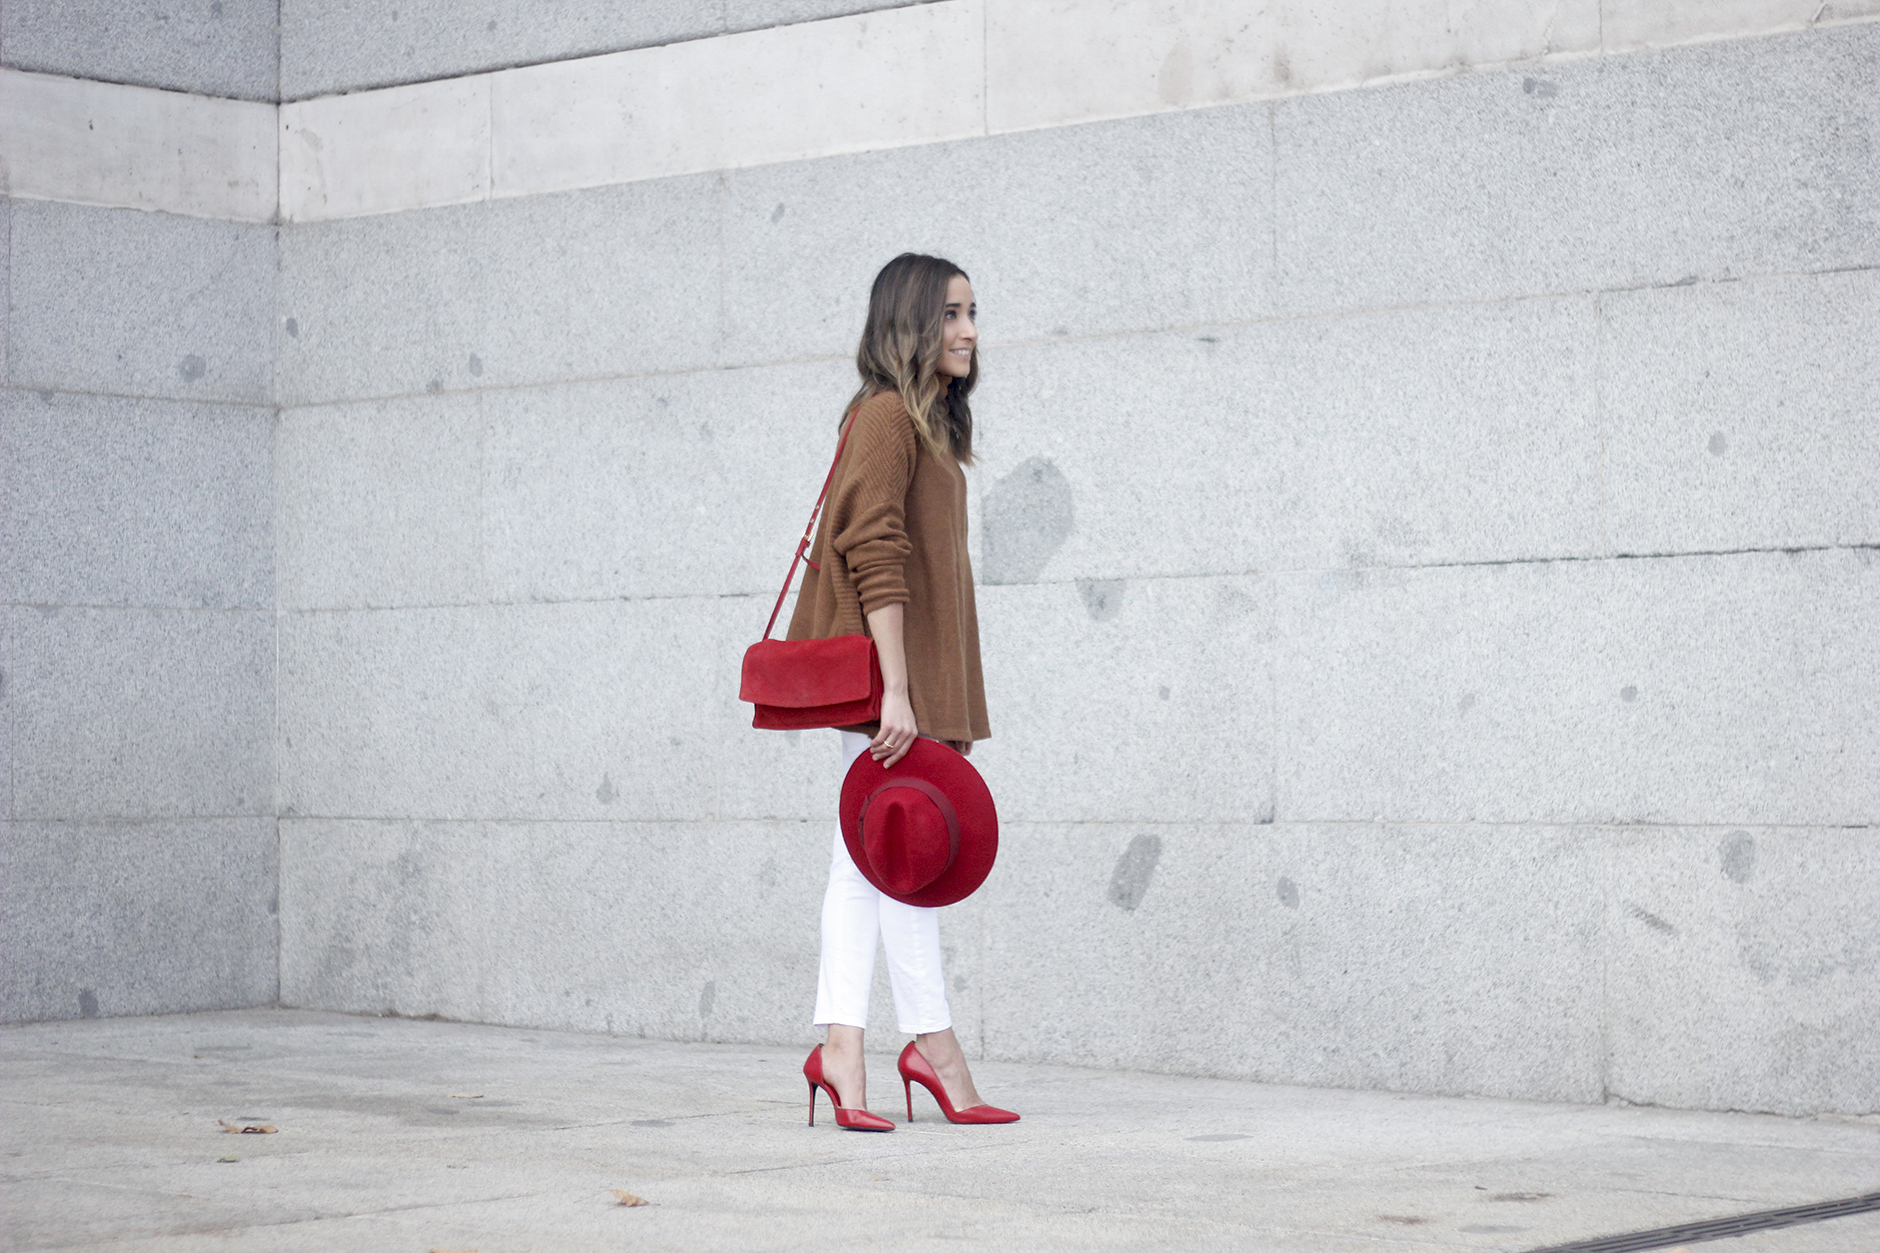 Turtleneck Sweater white jeans red heels red hat uterqüe outfit01